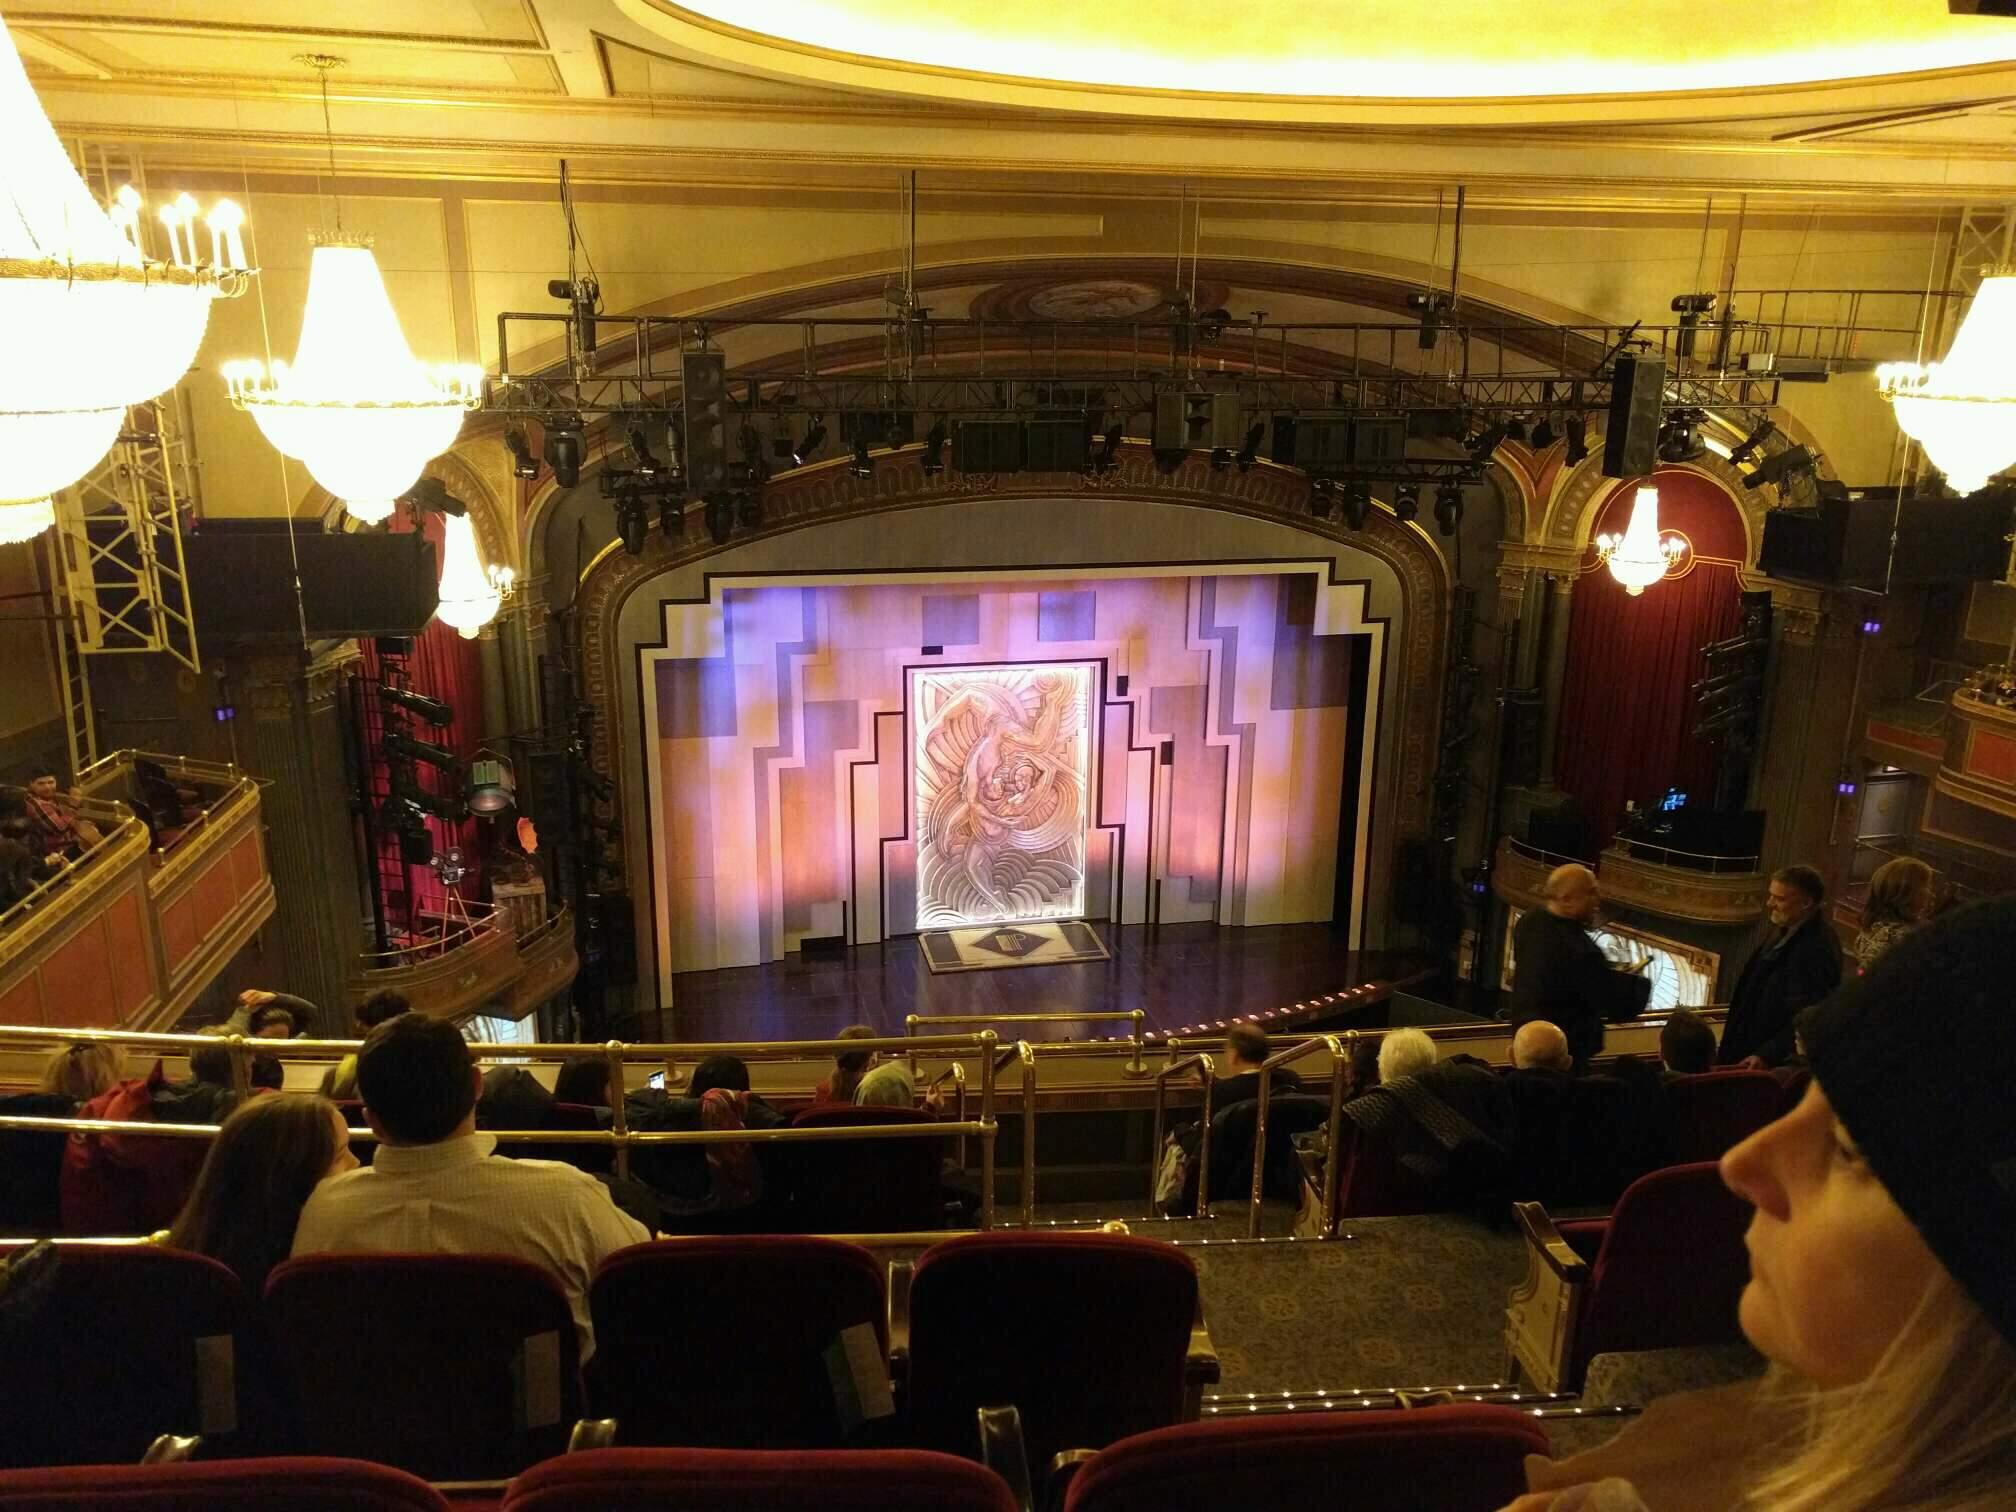 Lyric Theatre Section Balcony L Row G Seat 3